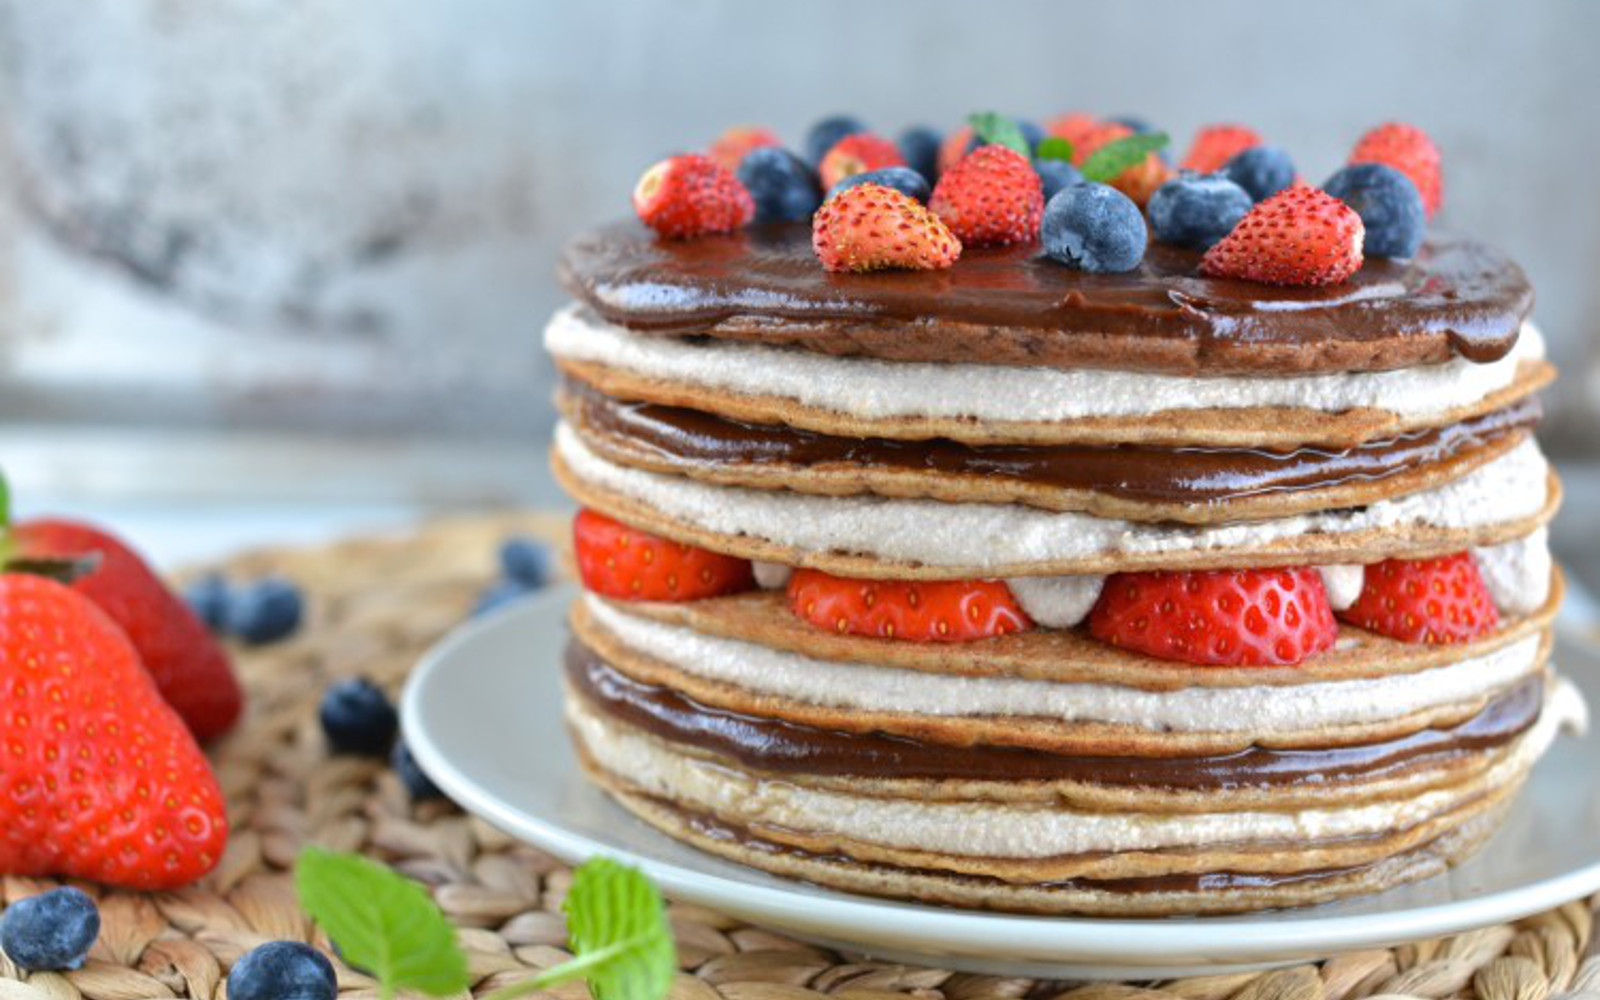 8-layer pancake tart